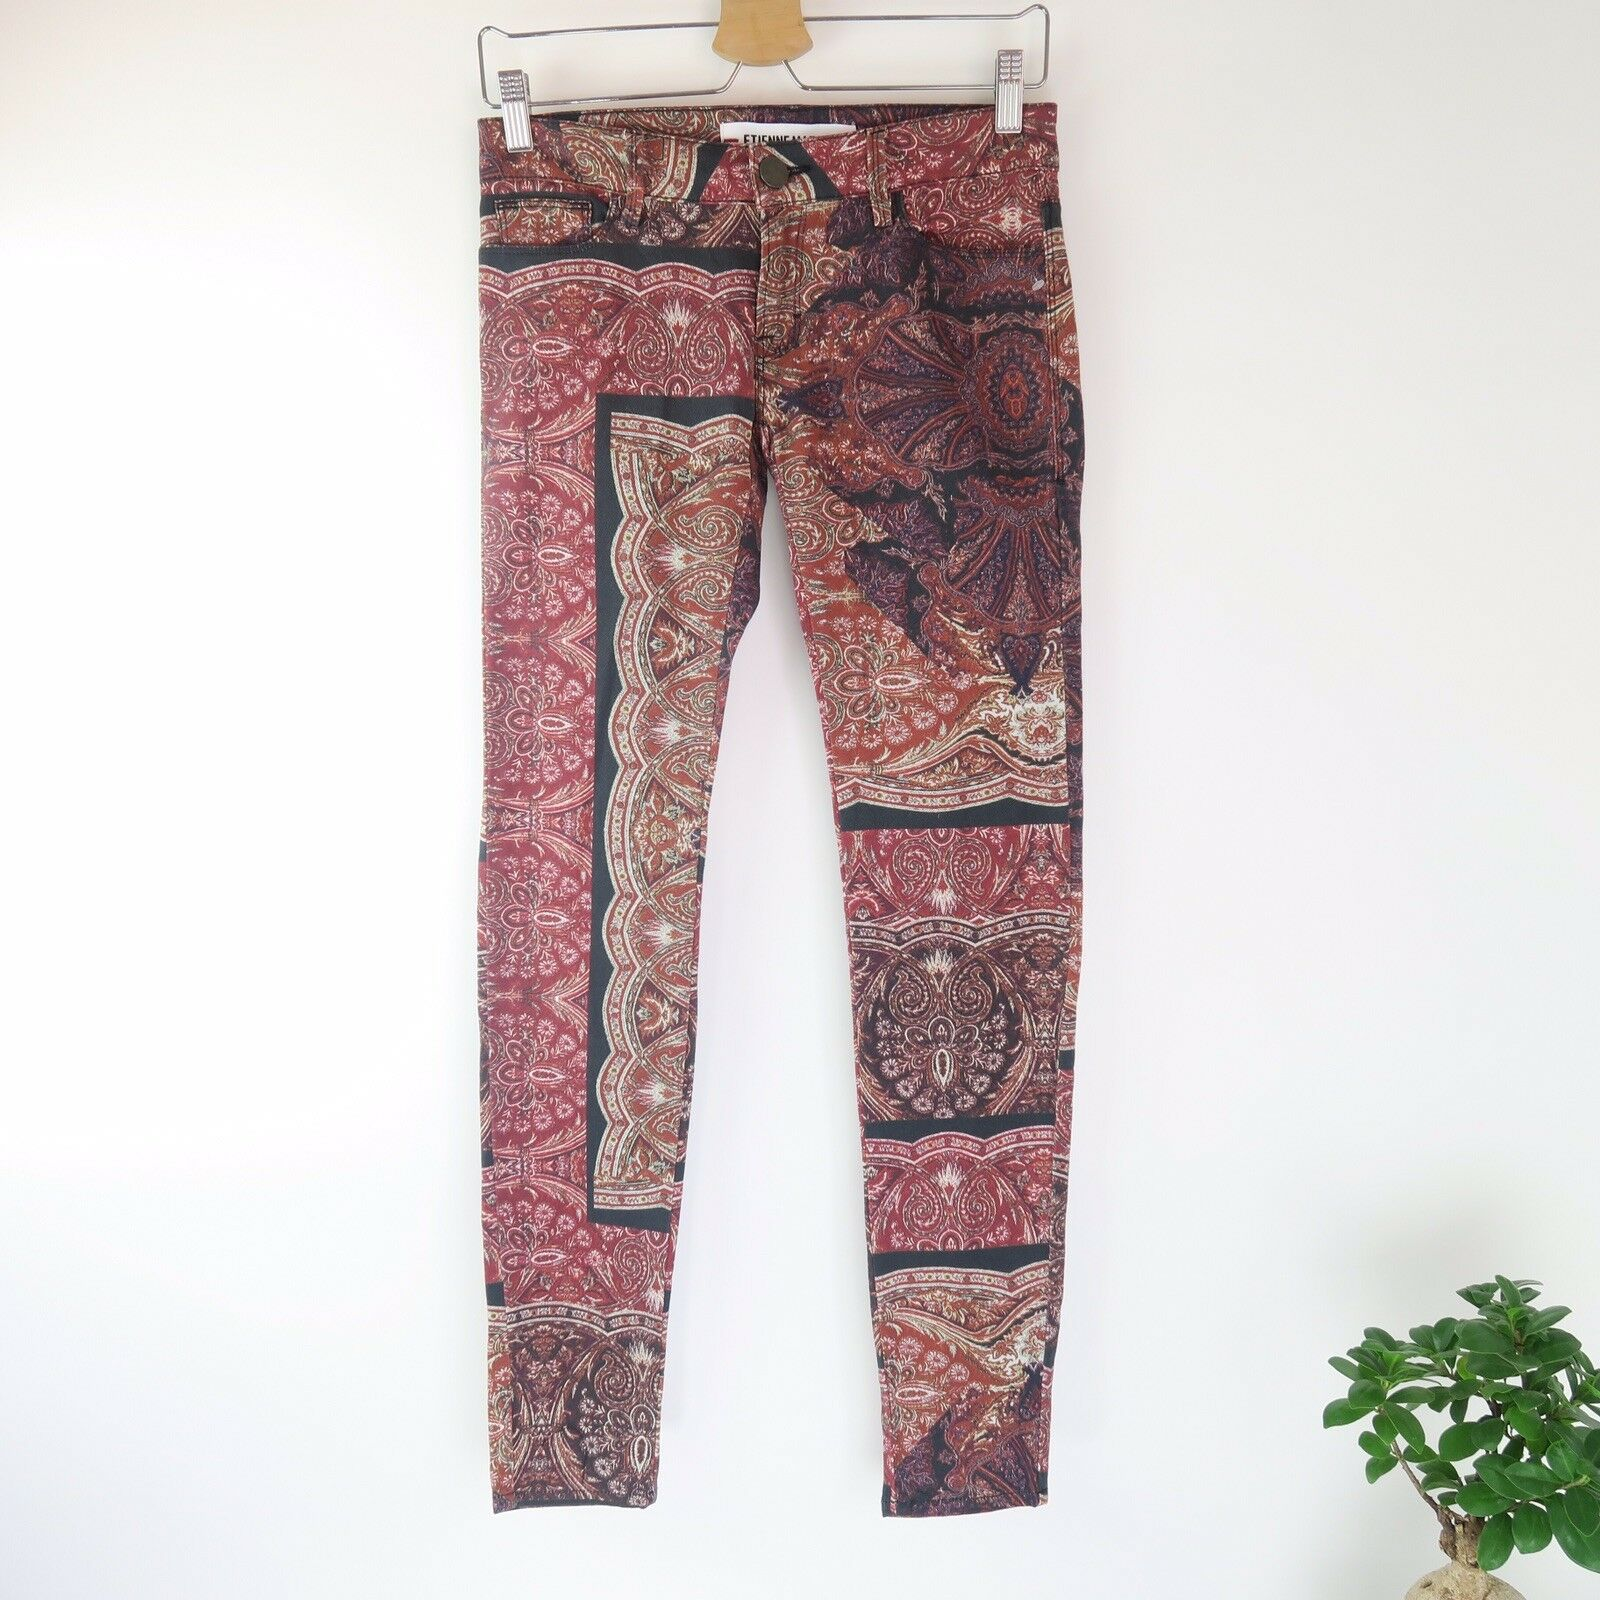 ETIENNE MARCEL Women's Size 25 Red Paisley Skinny Jeans New Without Tags